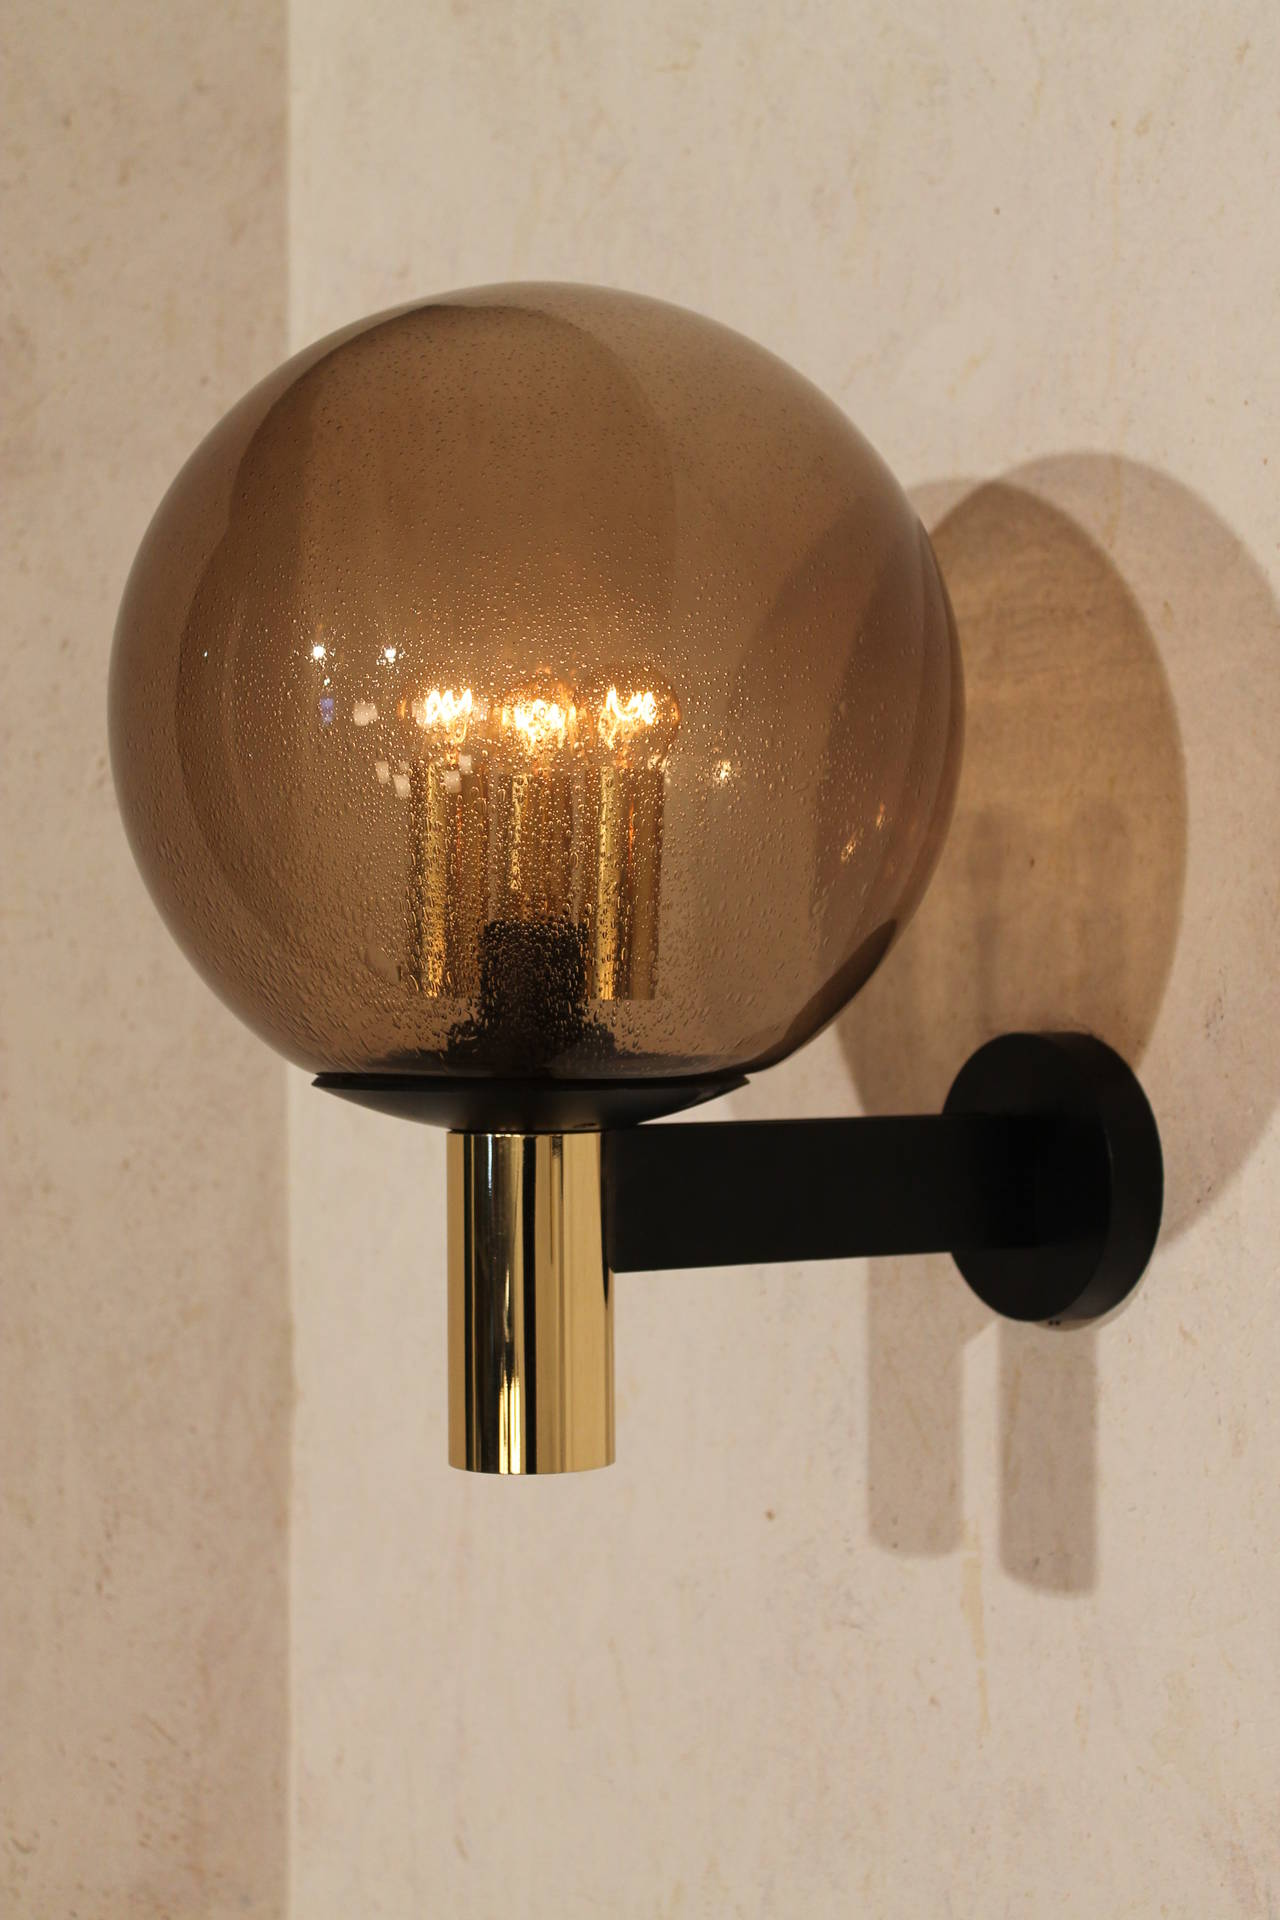 Large Glass Wall Lights : Eight Extra-Large Wall Sconces Smoked Glass with Brass Details, 1970s For Sale at 1stdibs